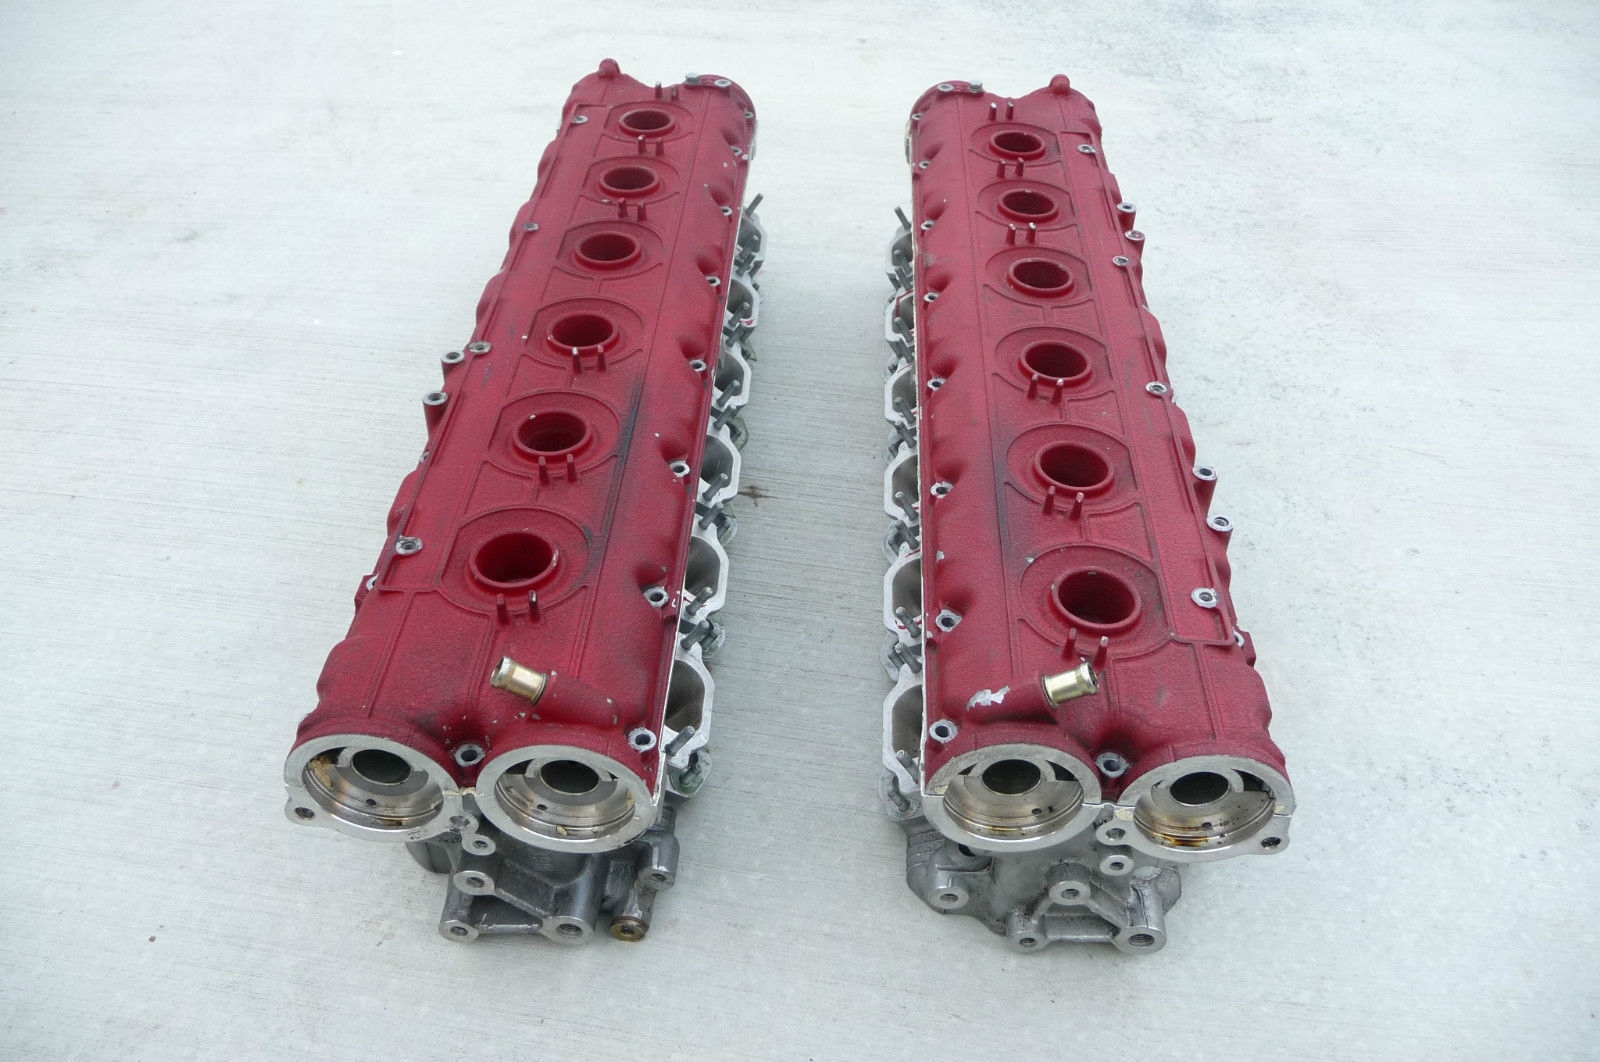 1995 1996 1997 1998 Ferrari 456 GT Complete Right and Left Cylinders Head & Head Covers OEM OE - Used Auto Parts Store | LA Global Parts